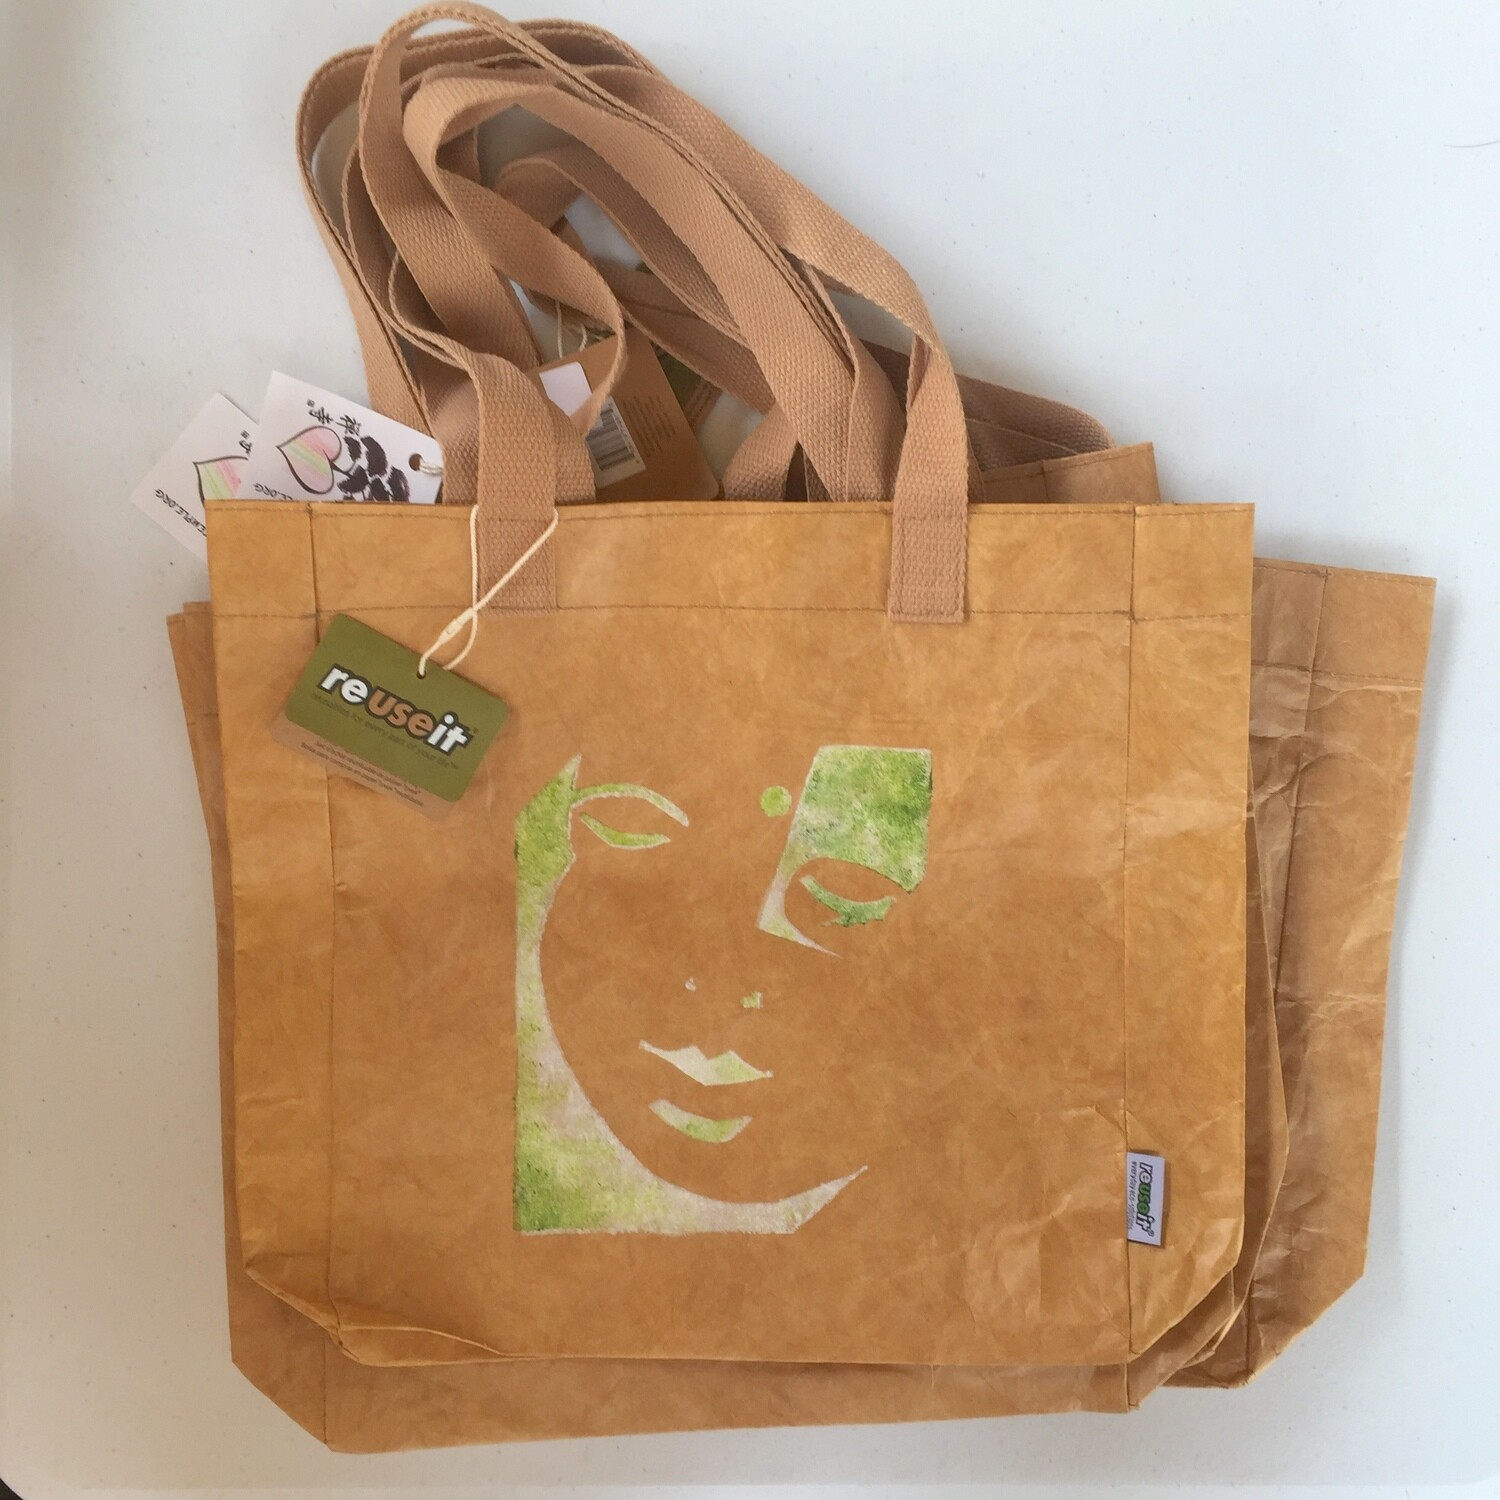 Recycled RESET Tote Bags